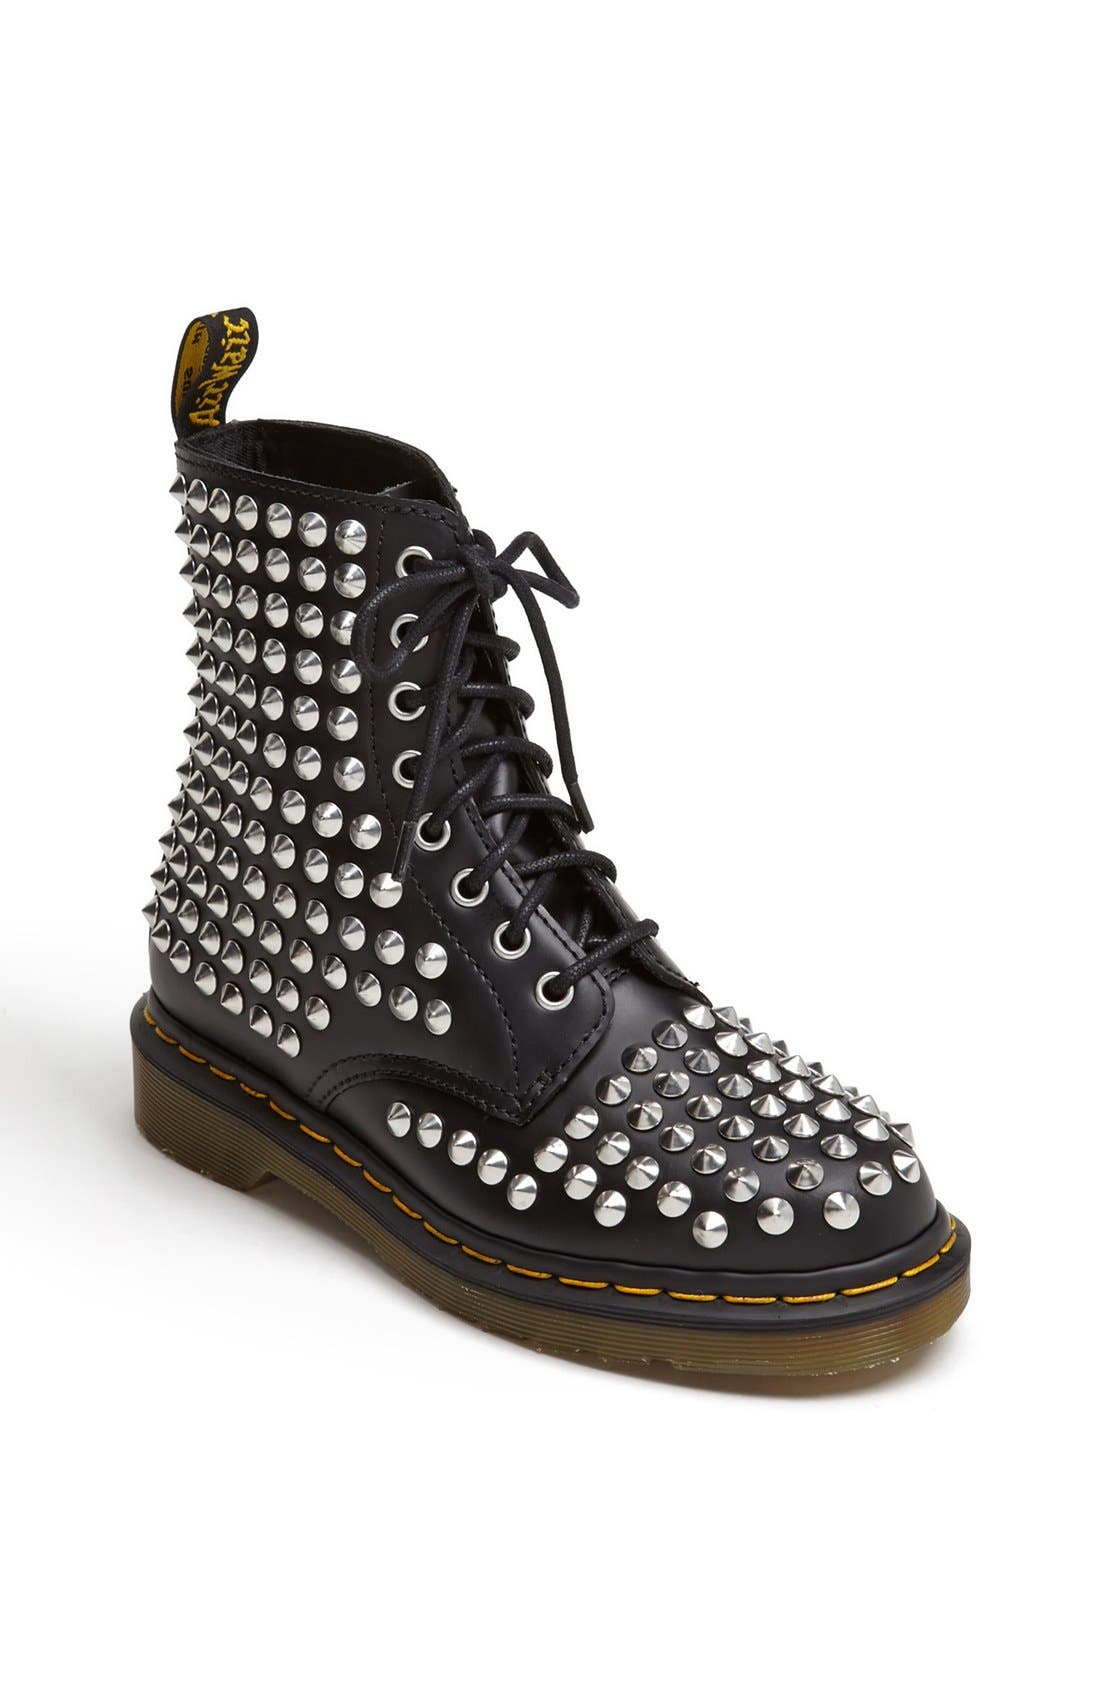 Main Image - Dr. Martens 'Spike' Boot